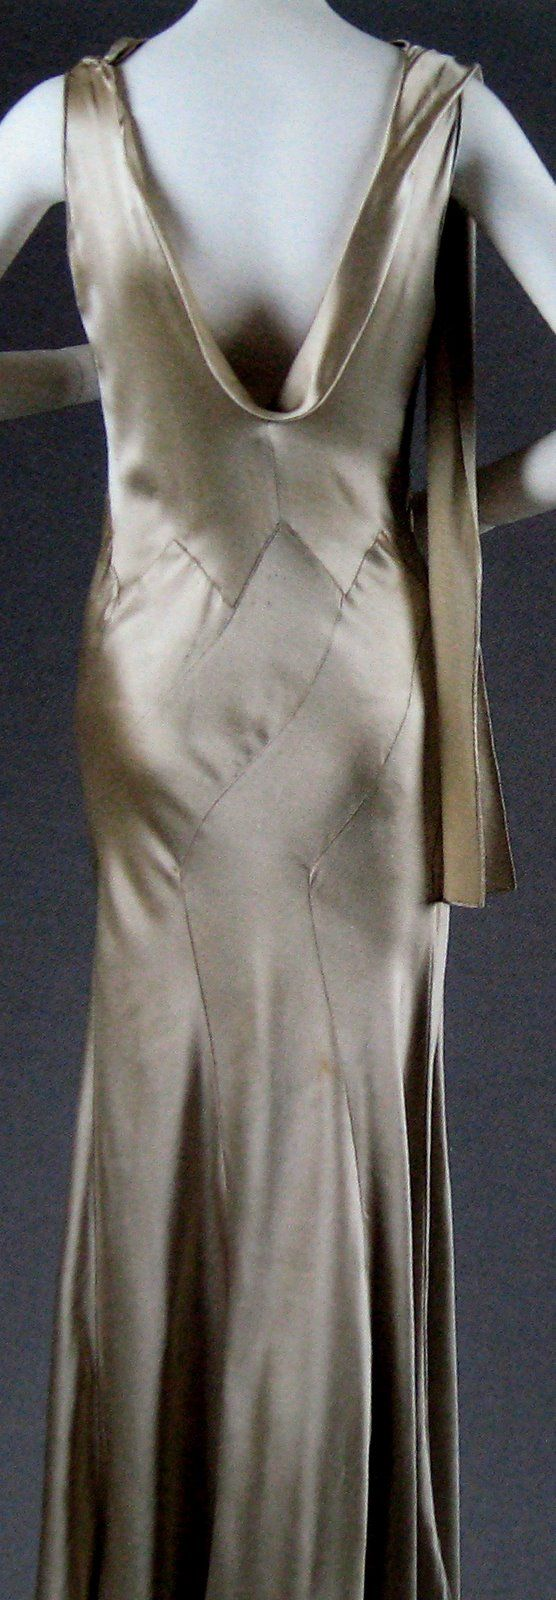 Bias Cut: originated by Madeleine Vionnet, a technique for cutting to utilize the diagonal direction of the cloth. It gave greater stretch and draped in a way to accentuate the body lines and curves.